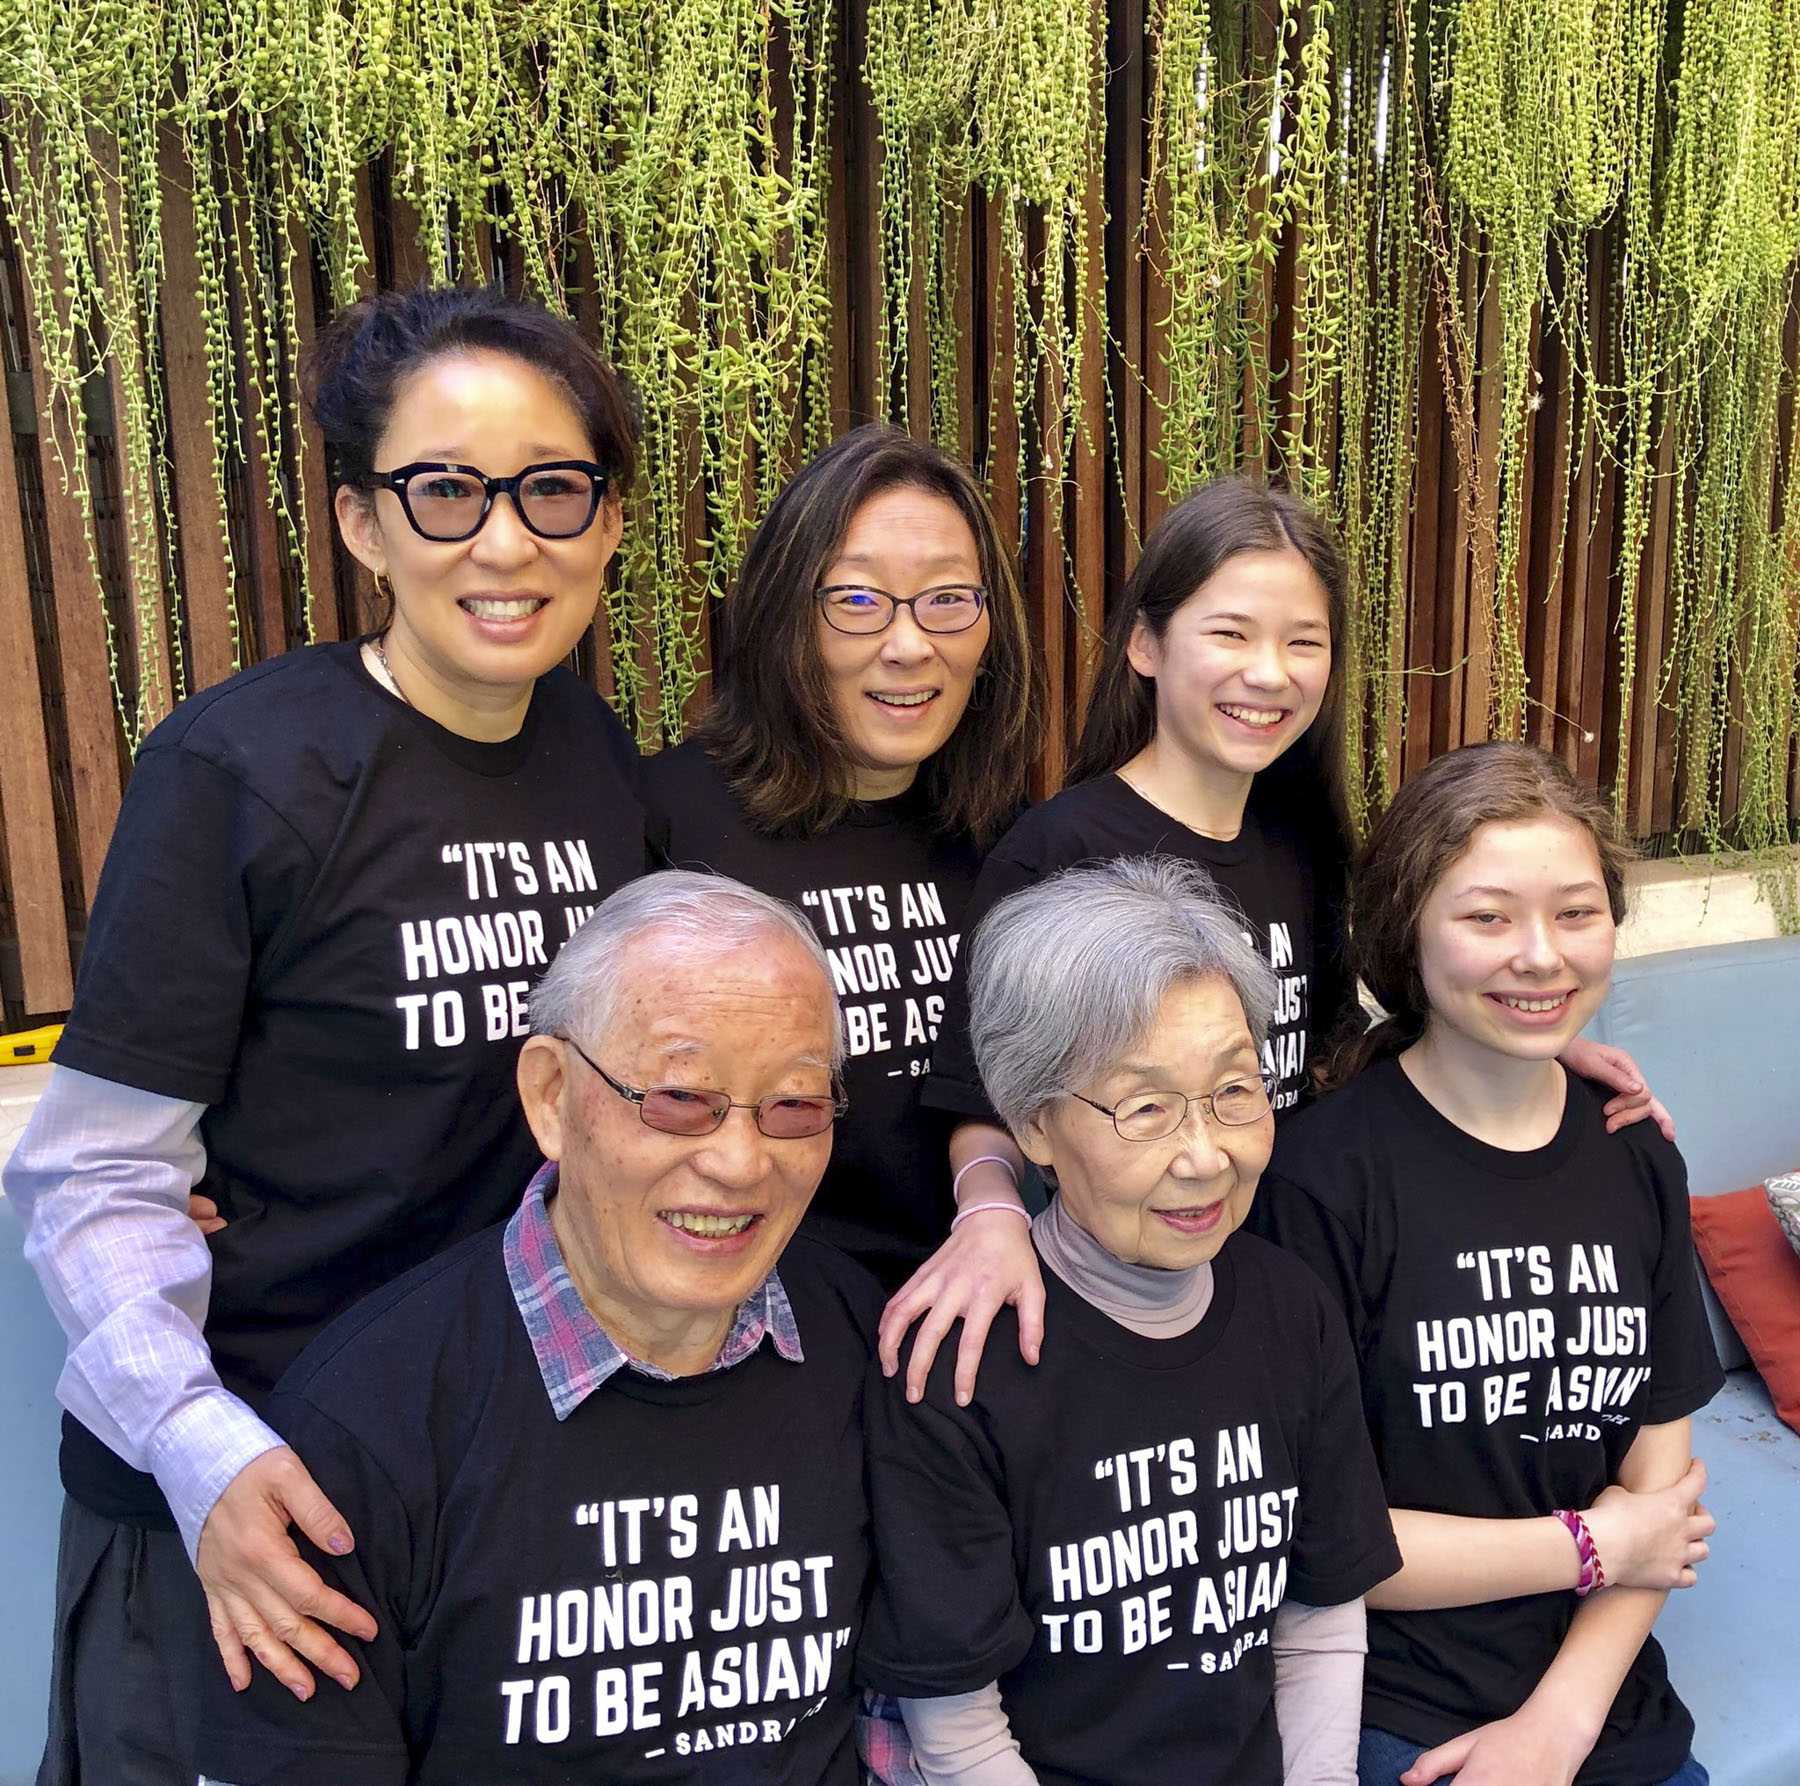 Sandra Oh's Family Supports Her Historic Golden Globes Hosting Gig with Matching Shirts — You Can Wear It Too!